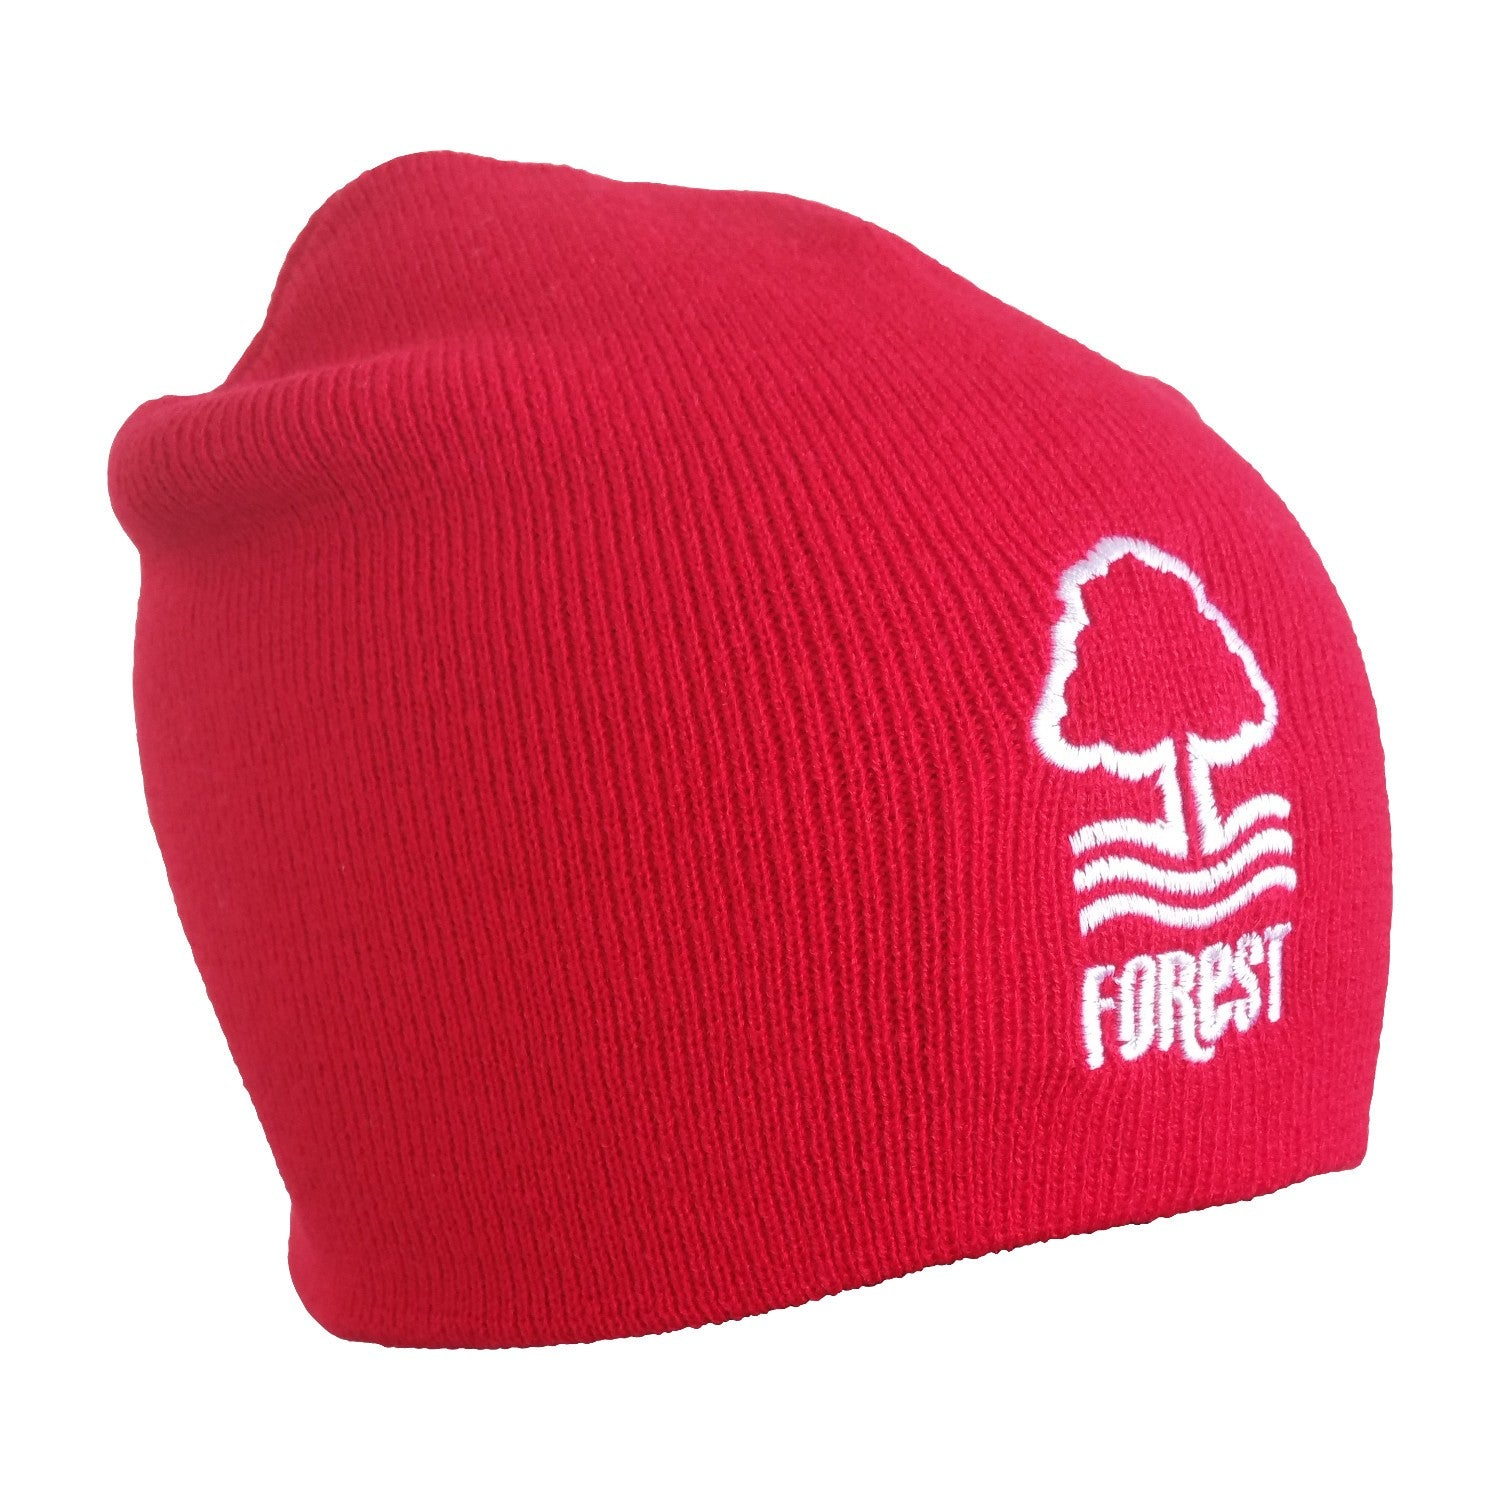 NFFC Adult Essential Red Beanie - Nottingham Forest